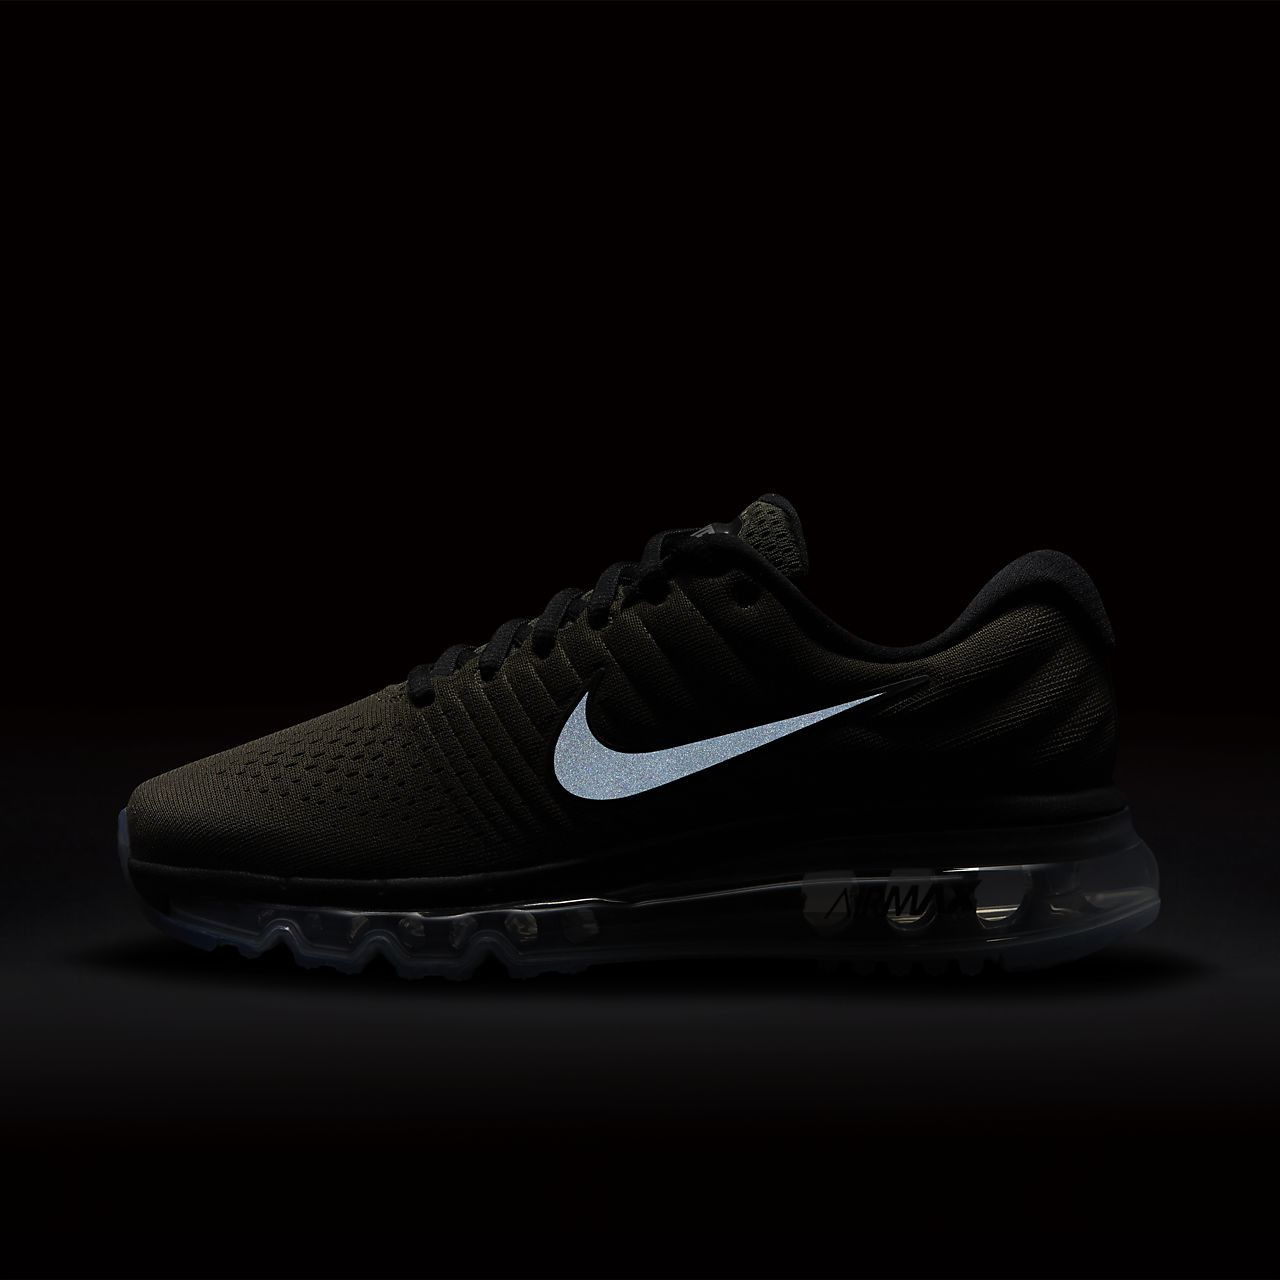 new nike shoes air max 2017 nz